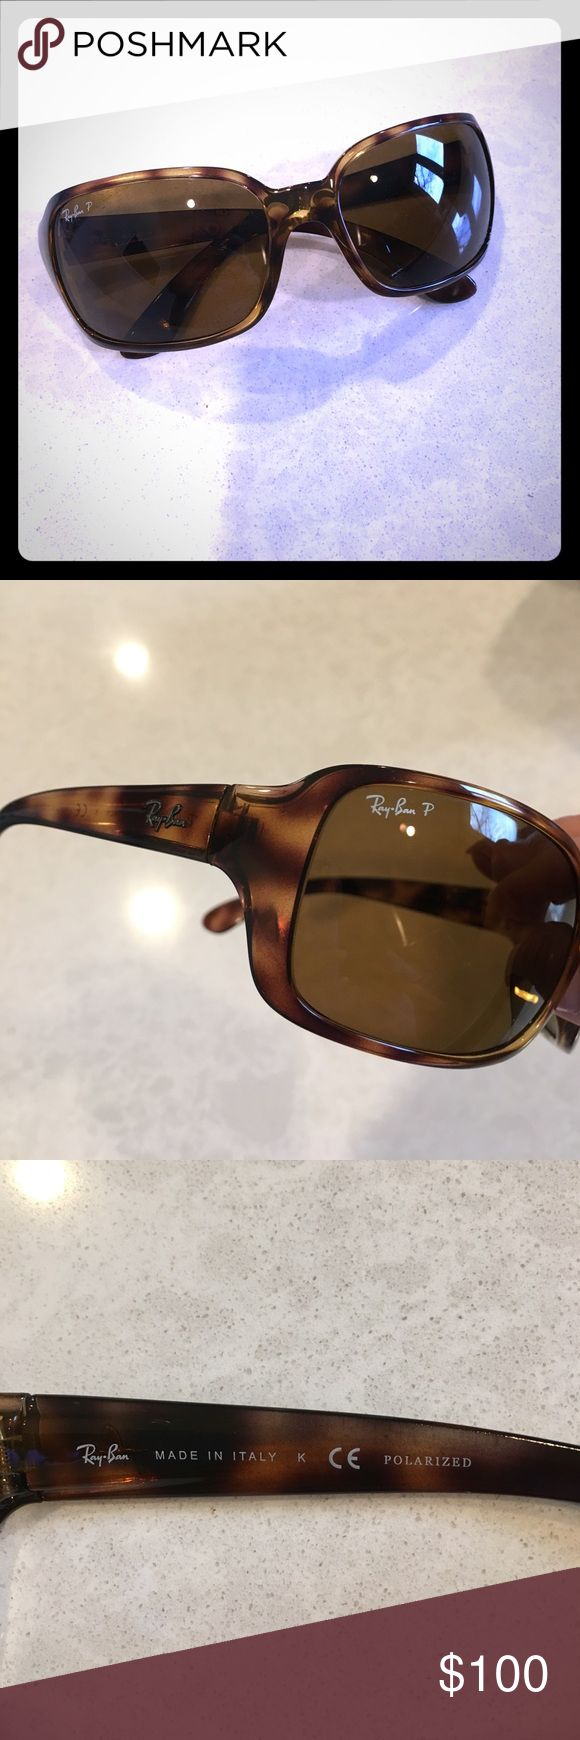 "Ray Ban Polarized sunglasses in tortoise color Like new! Excellent protection! Etched ""RB"" shown in last picture for authenticity. Comes with authentic cleansing cloth & case! Ray-Ban Accessories Sunglasses"